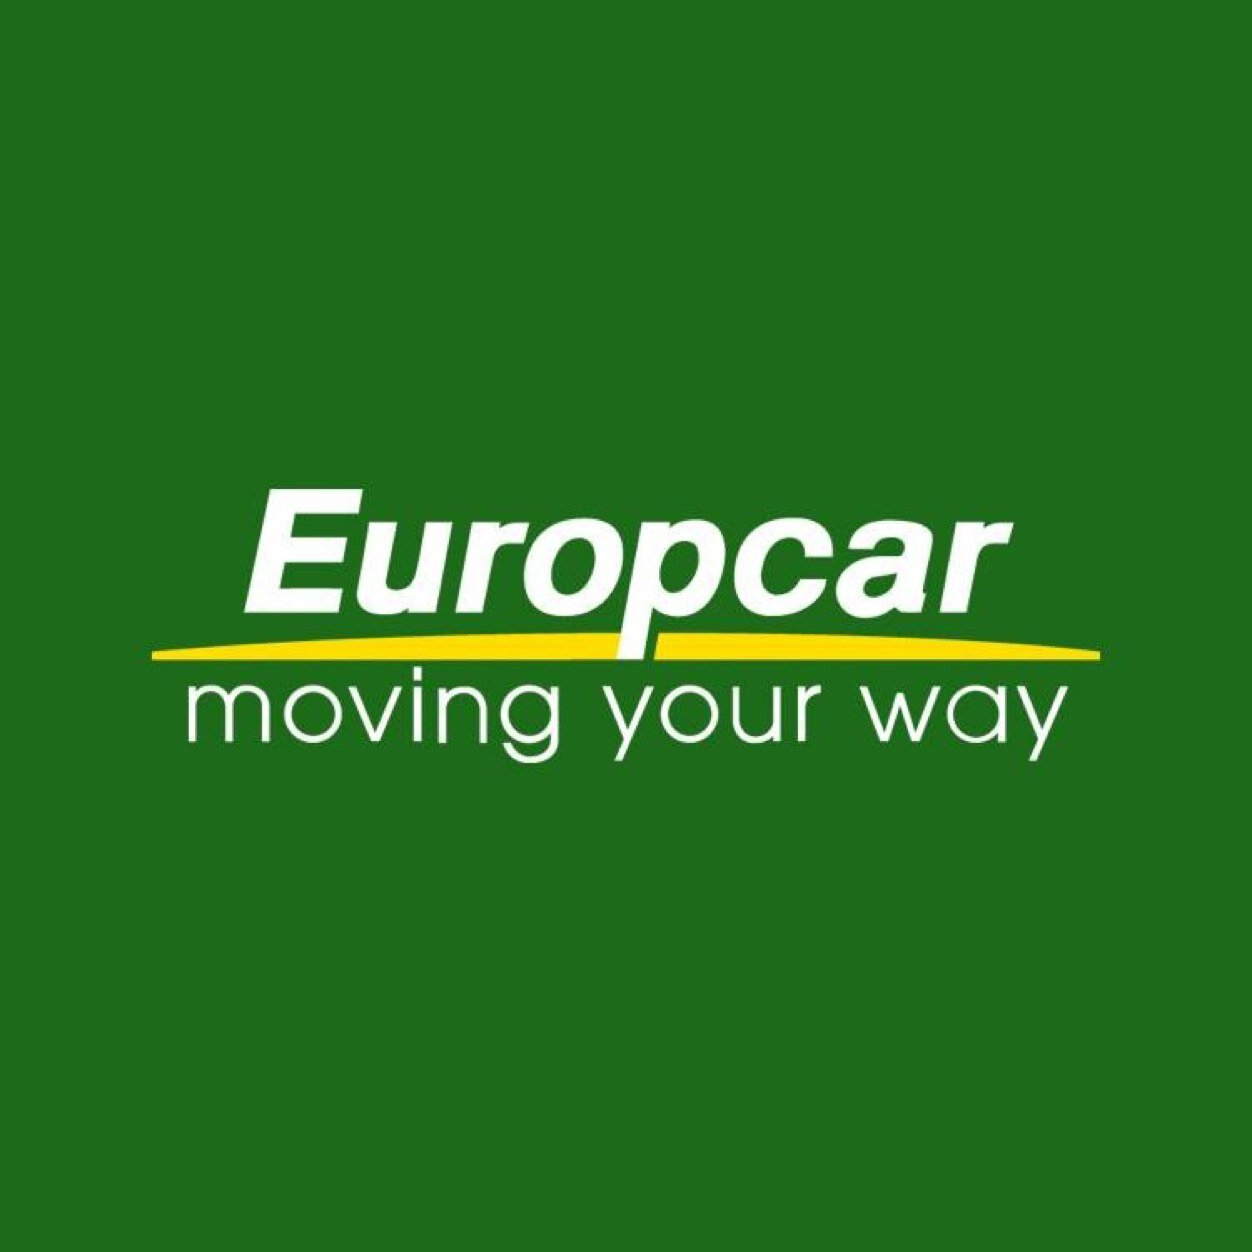 Europcar In Ireland At Dublin Airport Dublin Hire